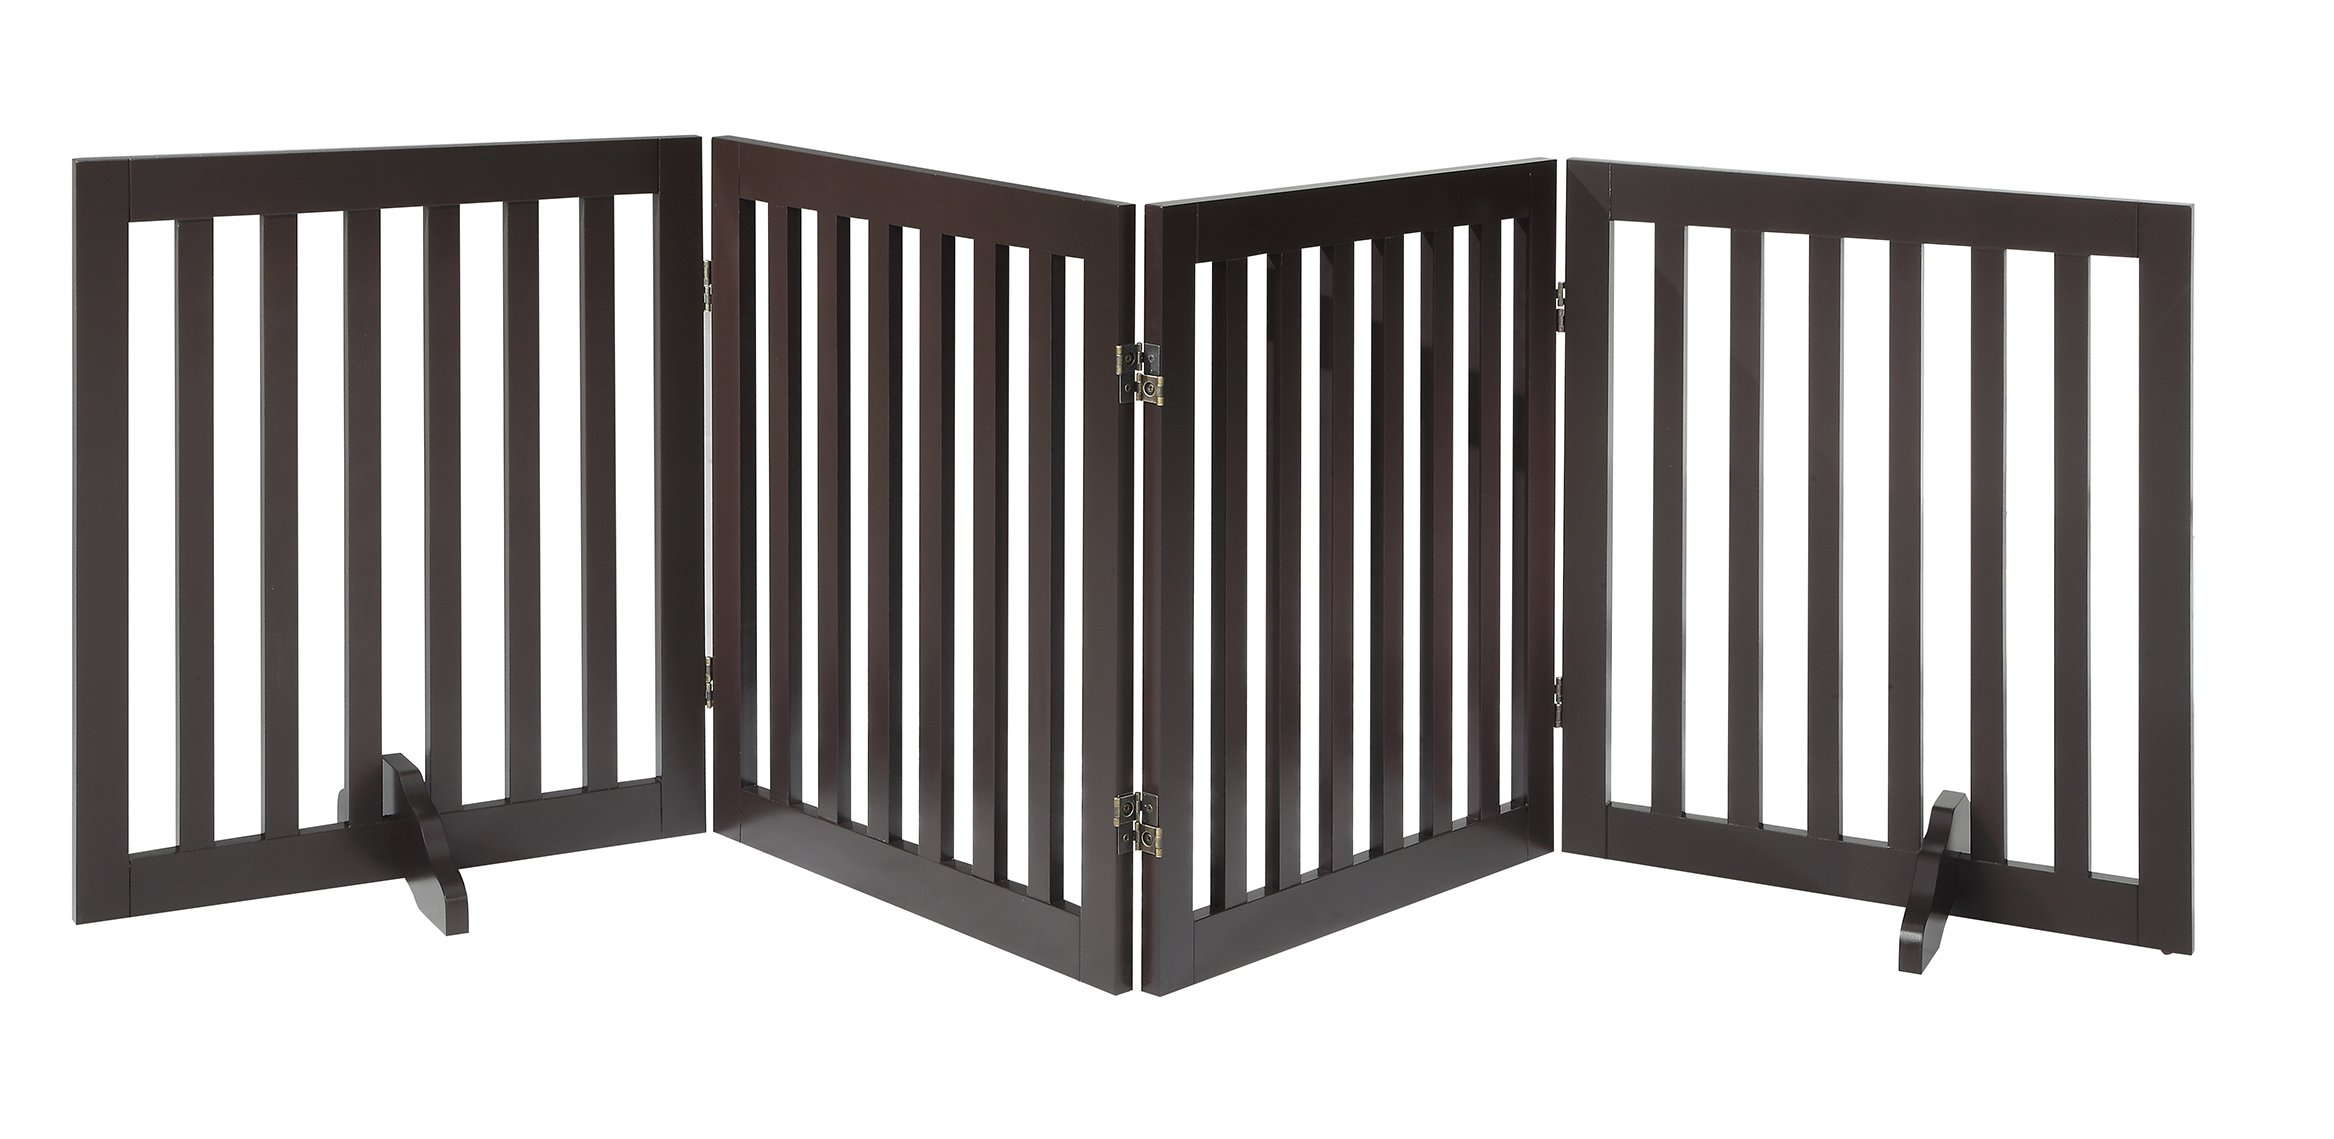 Total Win - Freestanding 24'' Step Over Dog Gate w/ Support Feet (Espresso) | Up to 80'' Wide | Assembly-free | Sturdy Wooden Structure | Foldable Design